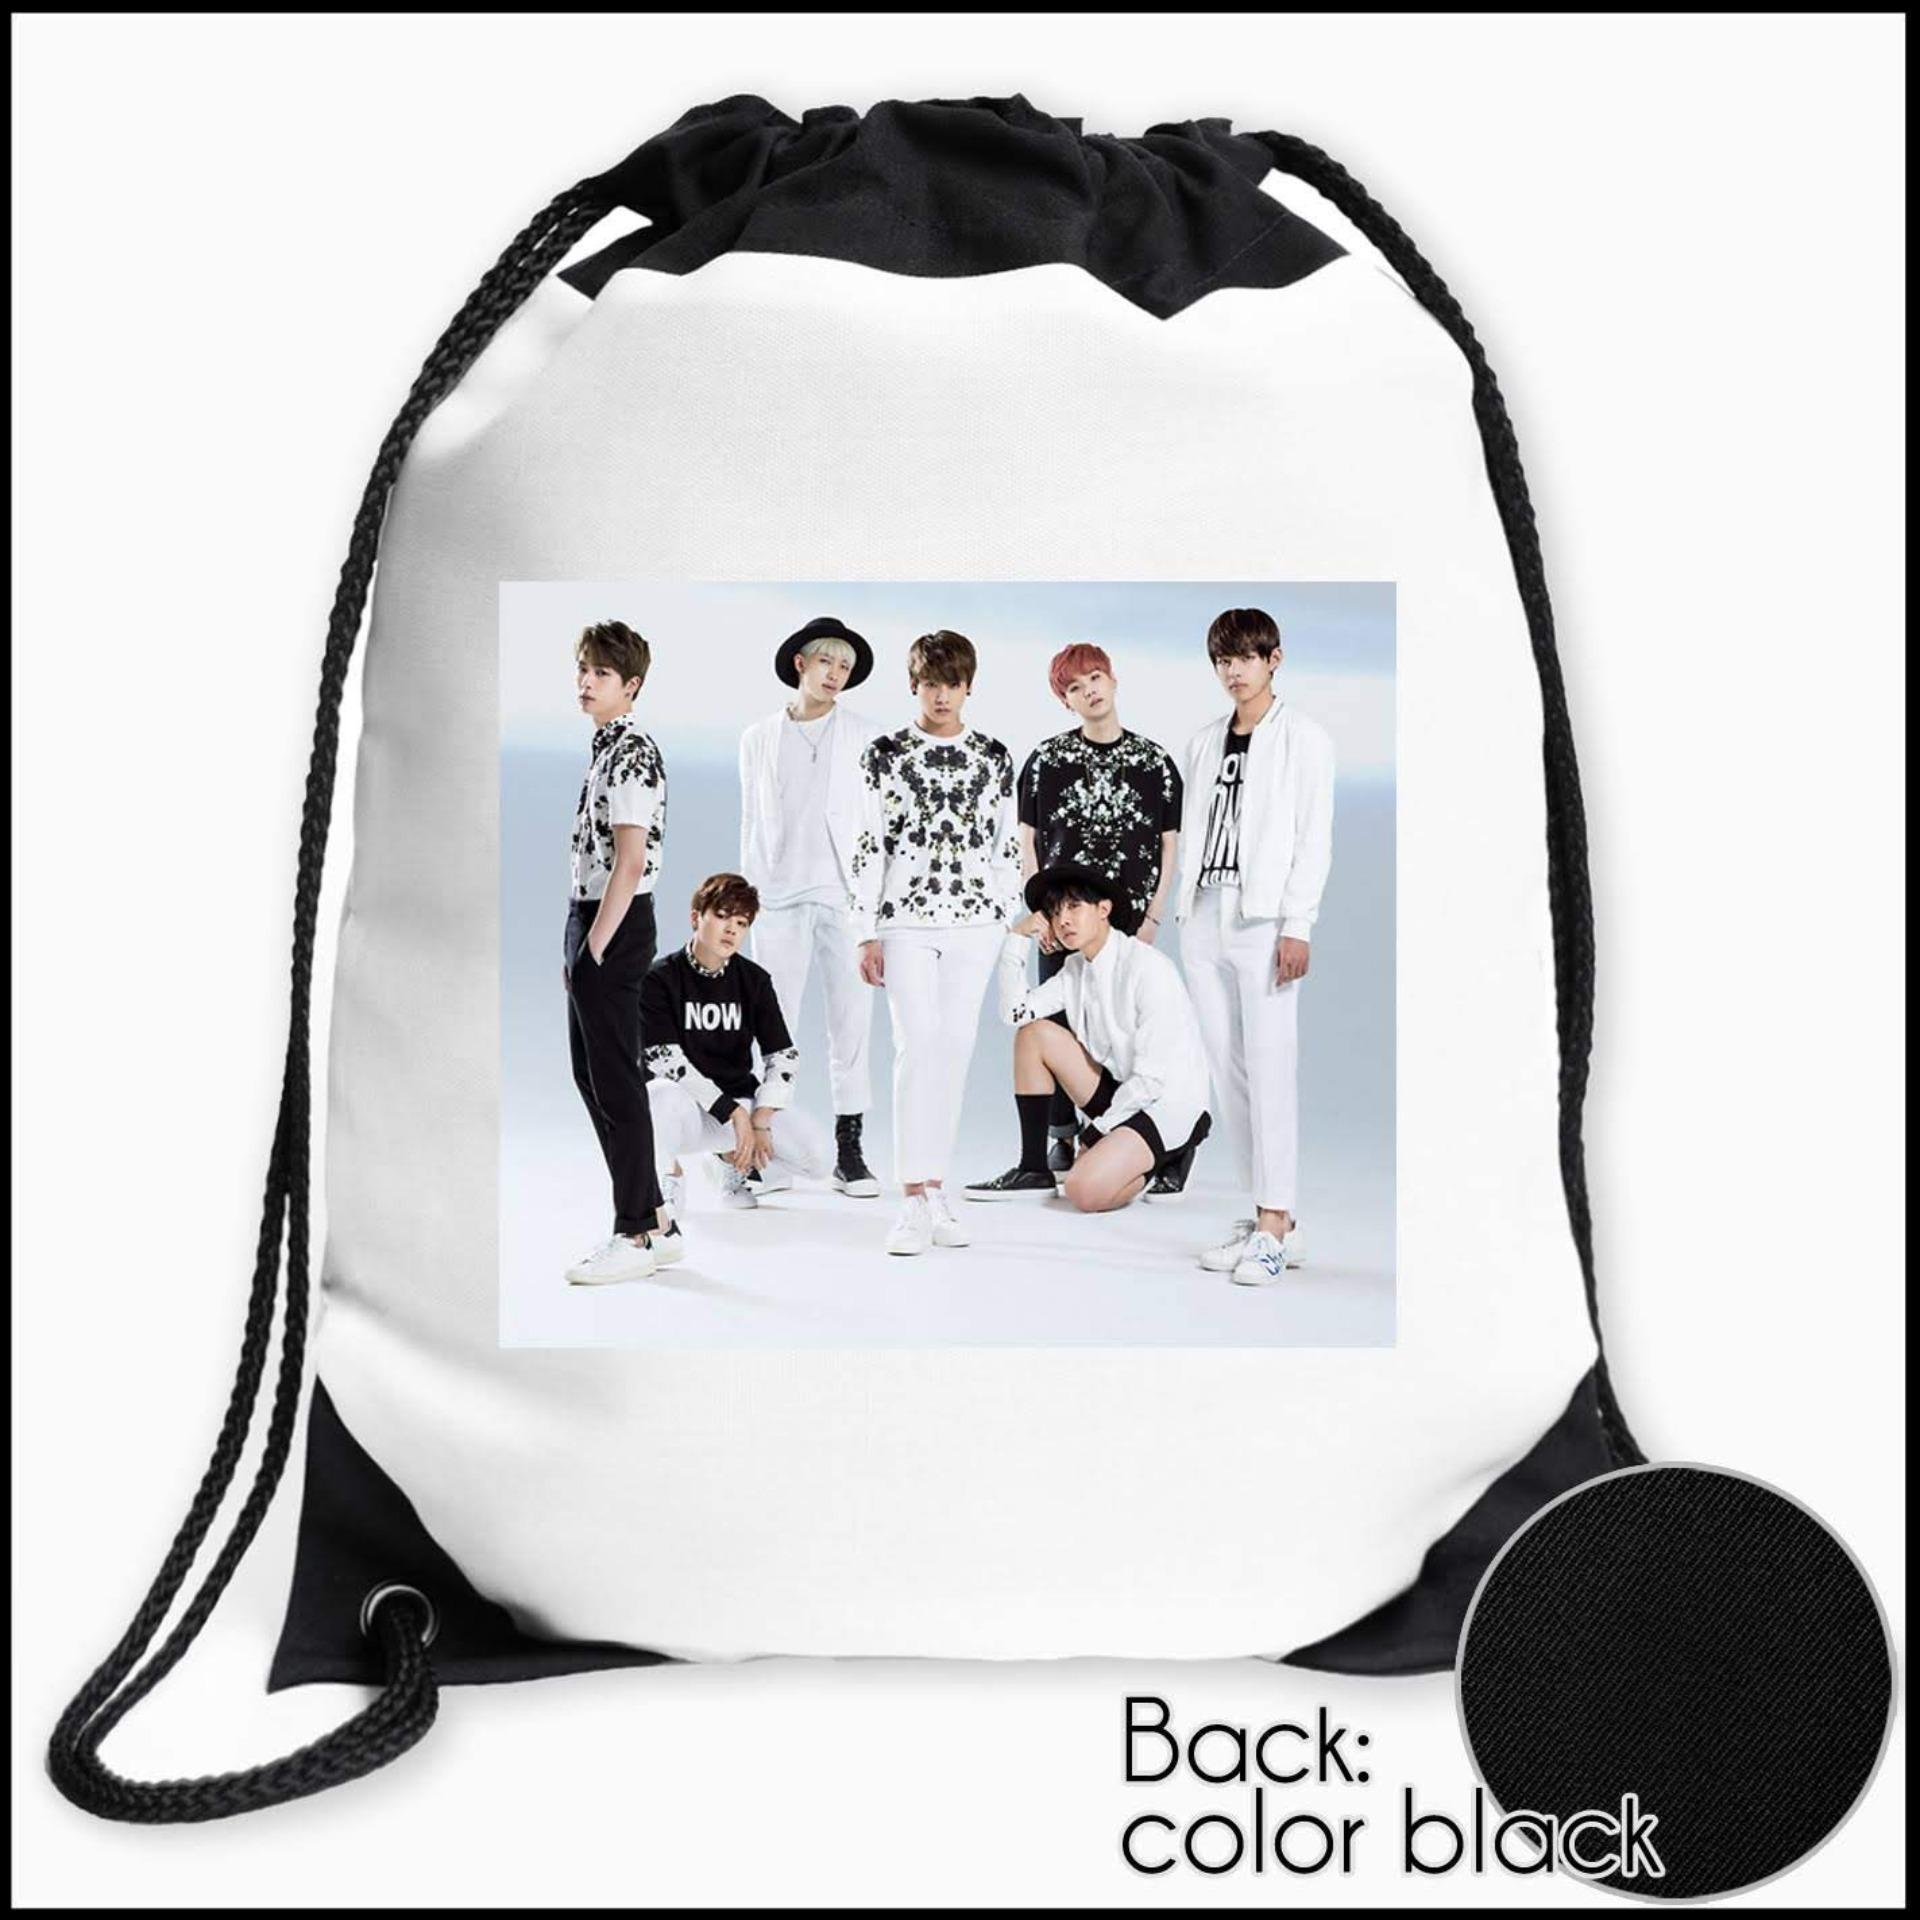 Original Customizable Drawstring Bag String Backpack BTS Design for  Travel